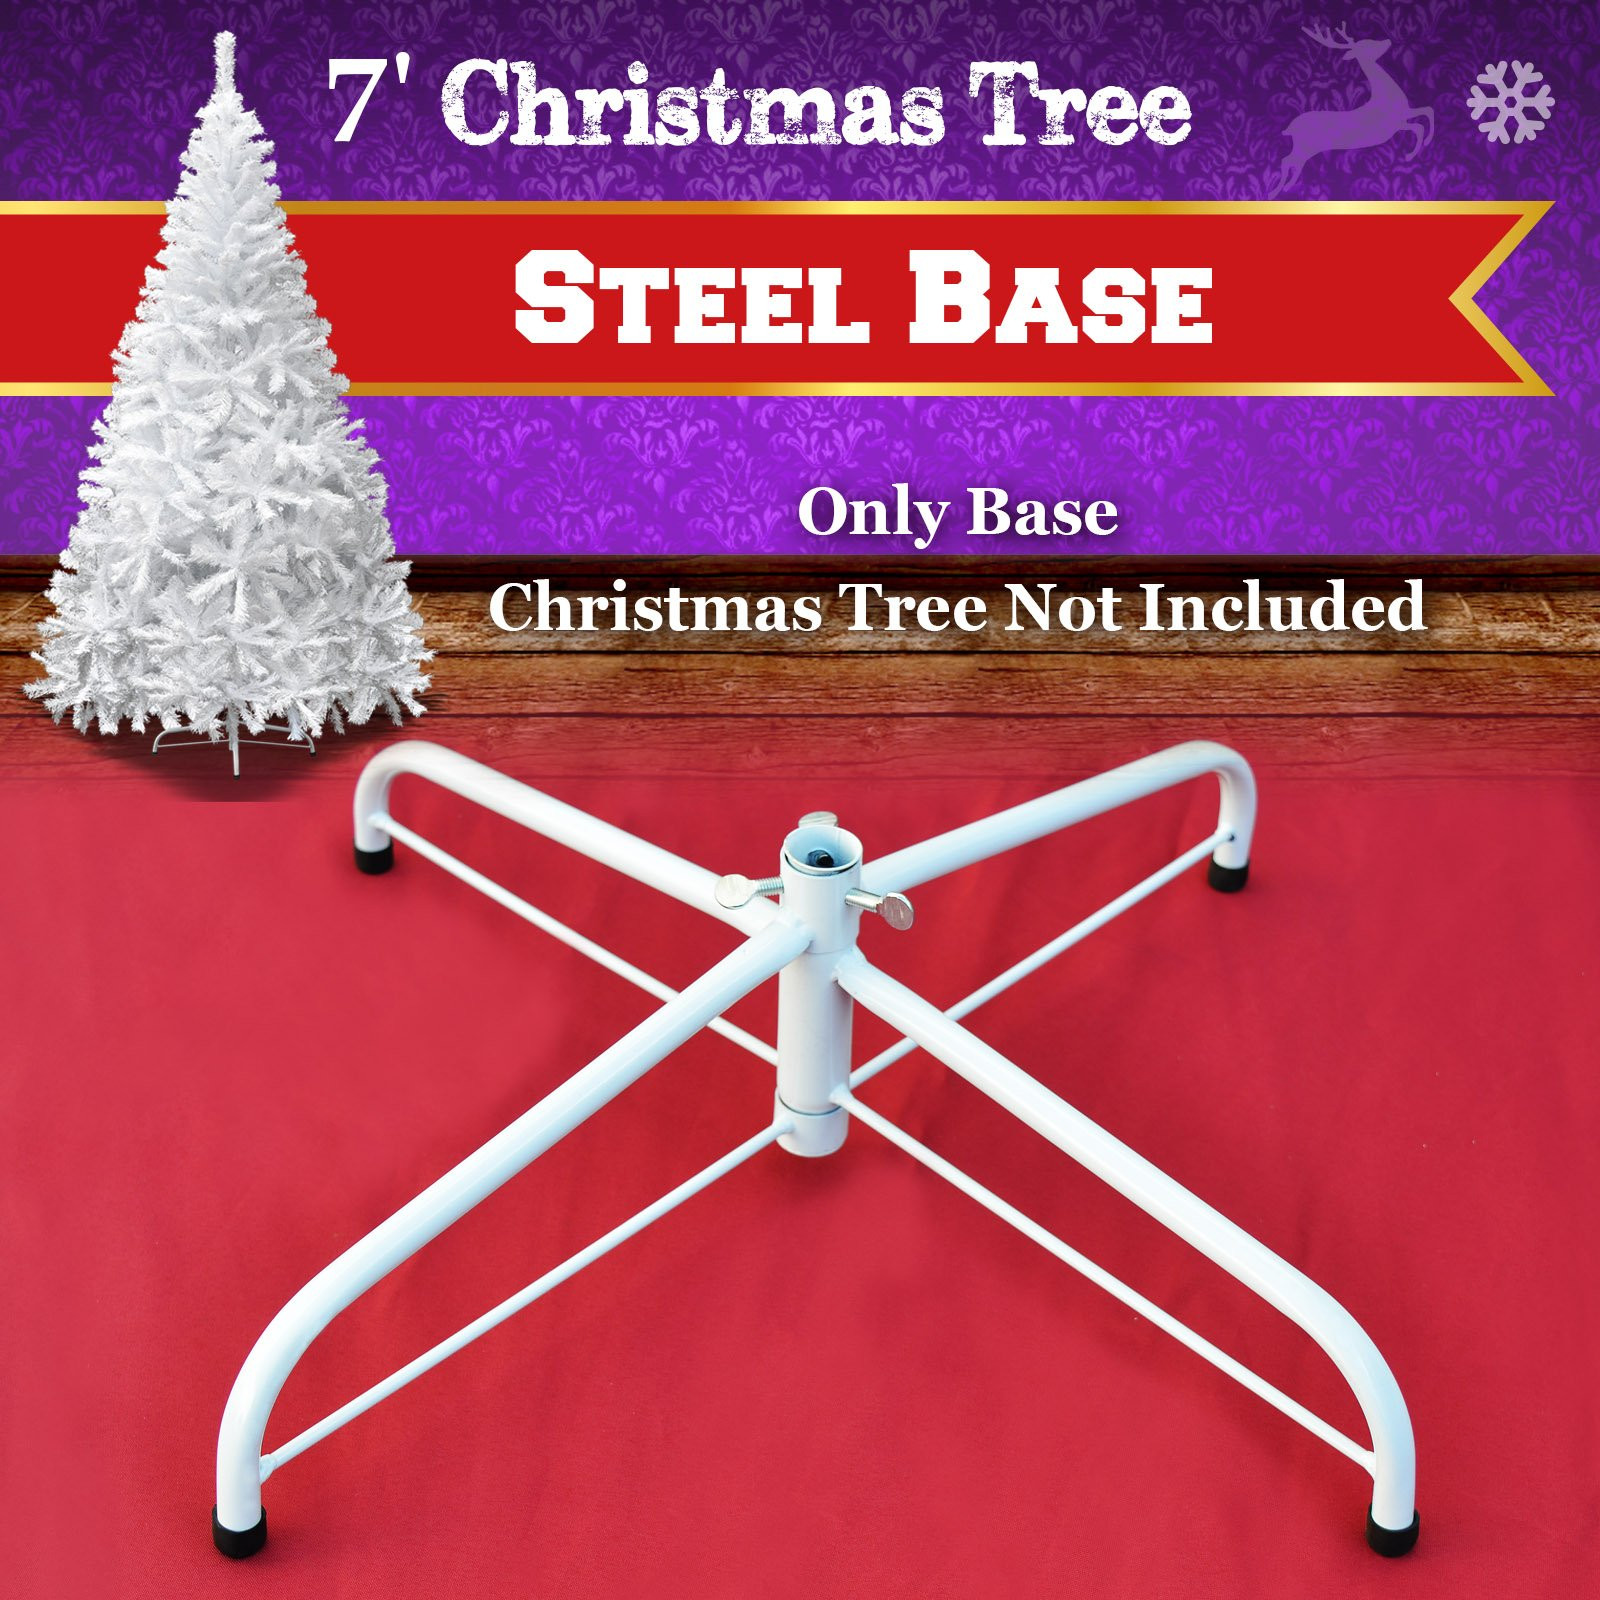 Steel Base Metal Stand for 5/6/7/7.5ft Christmas Tree Green Christmas Decor (7', White)